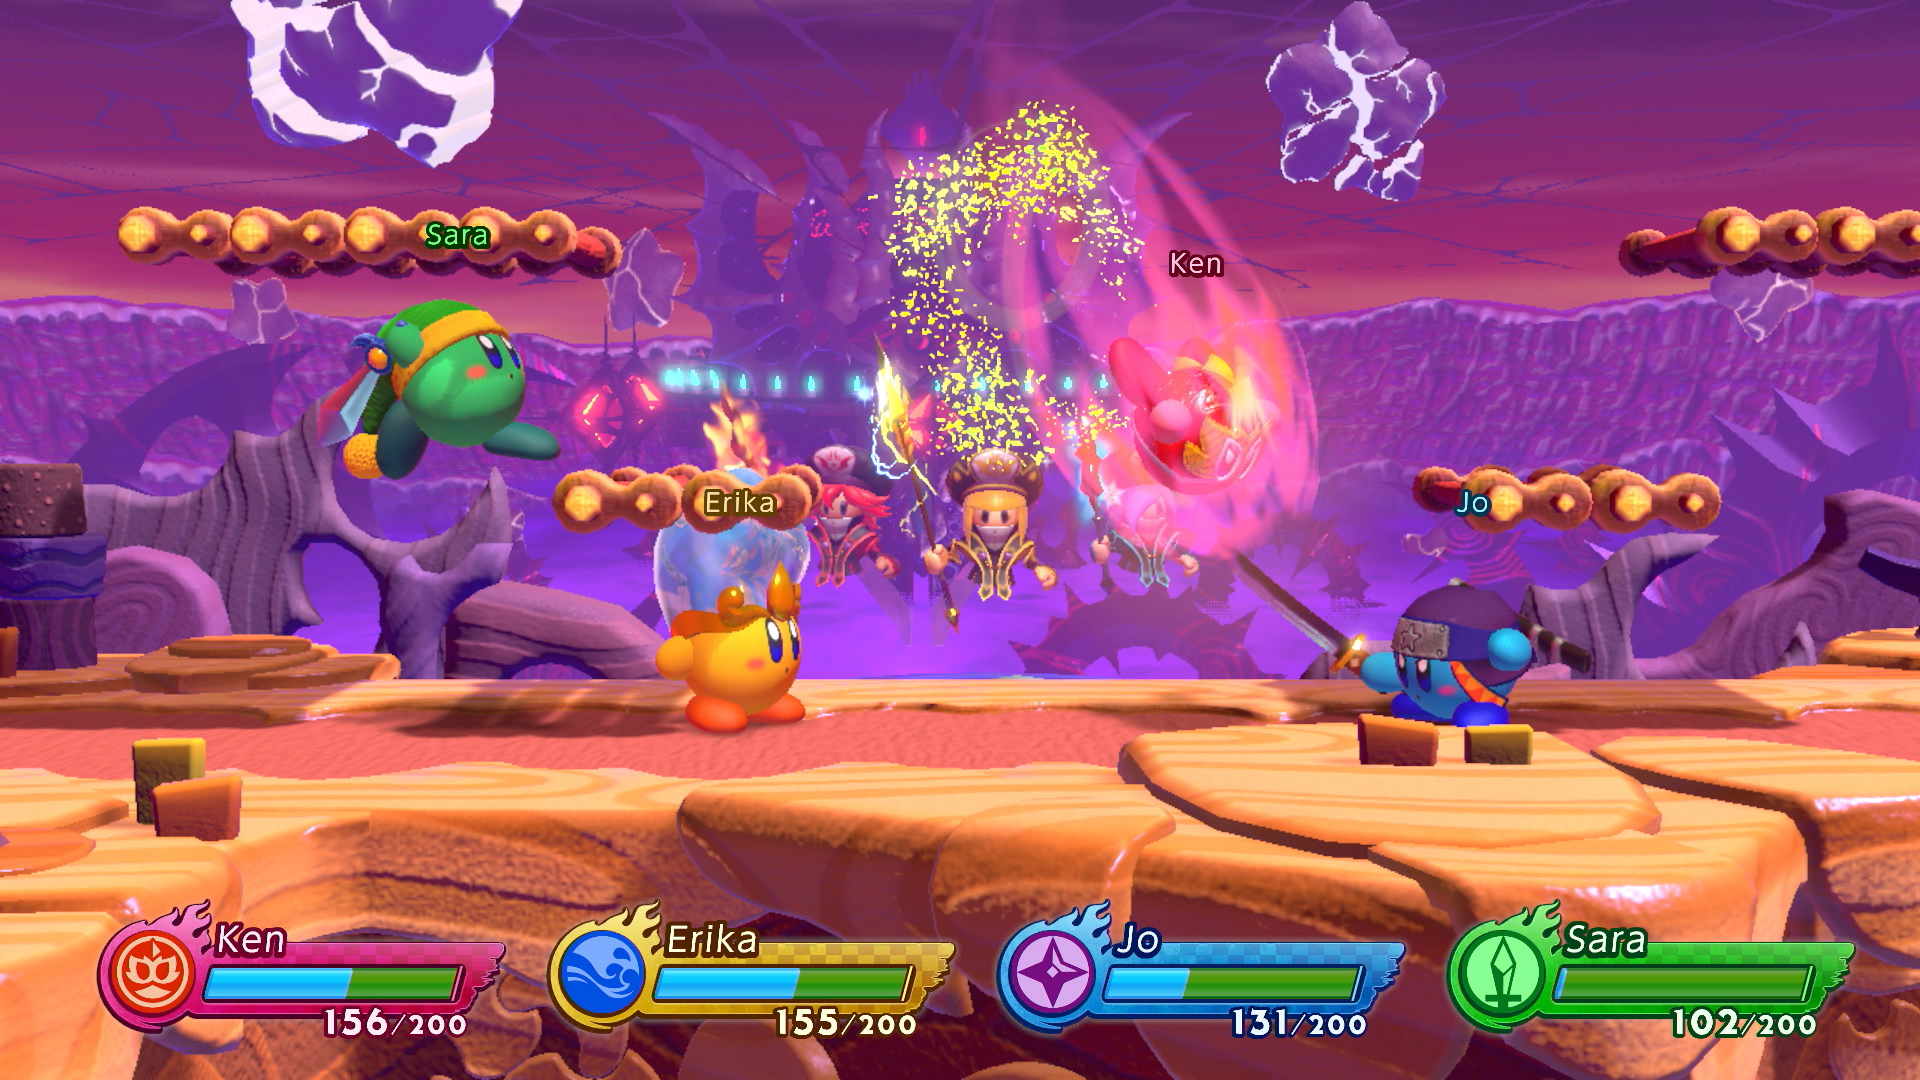 NSwitchDS_KirbyFighters2_02 (1)